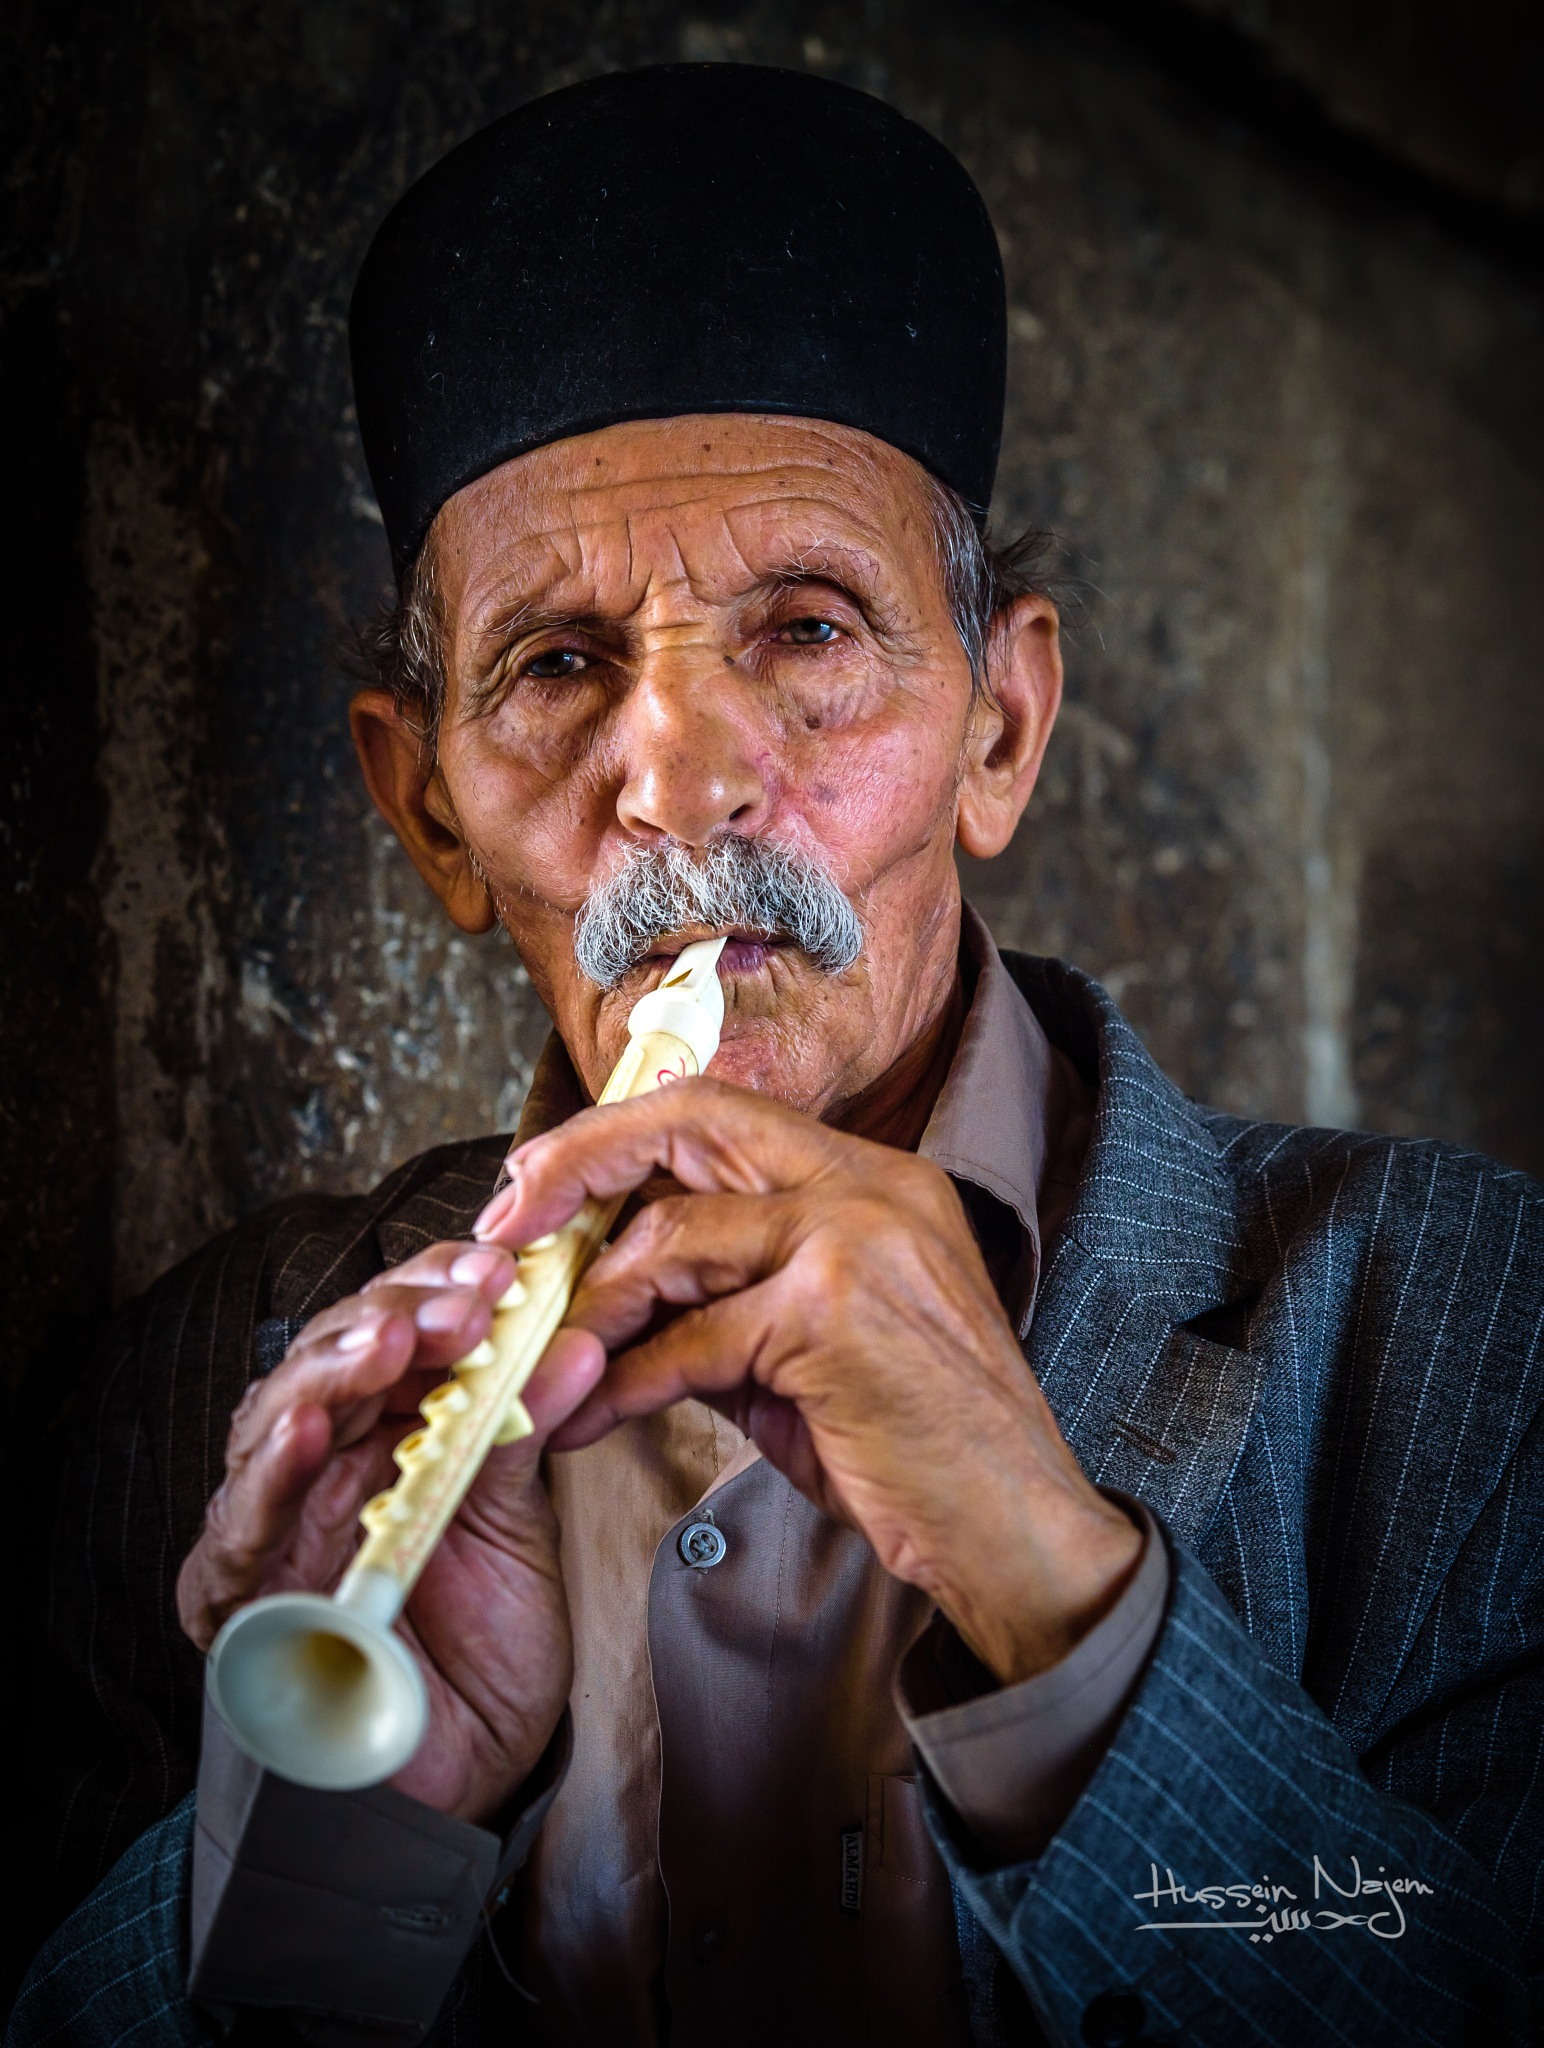 flute player by Hussein Najem